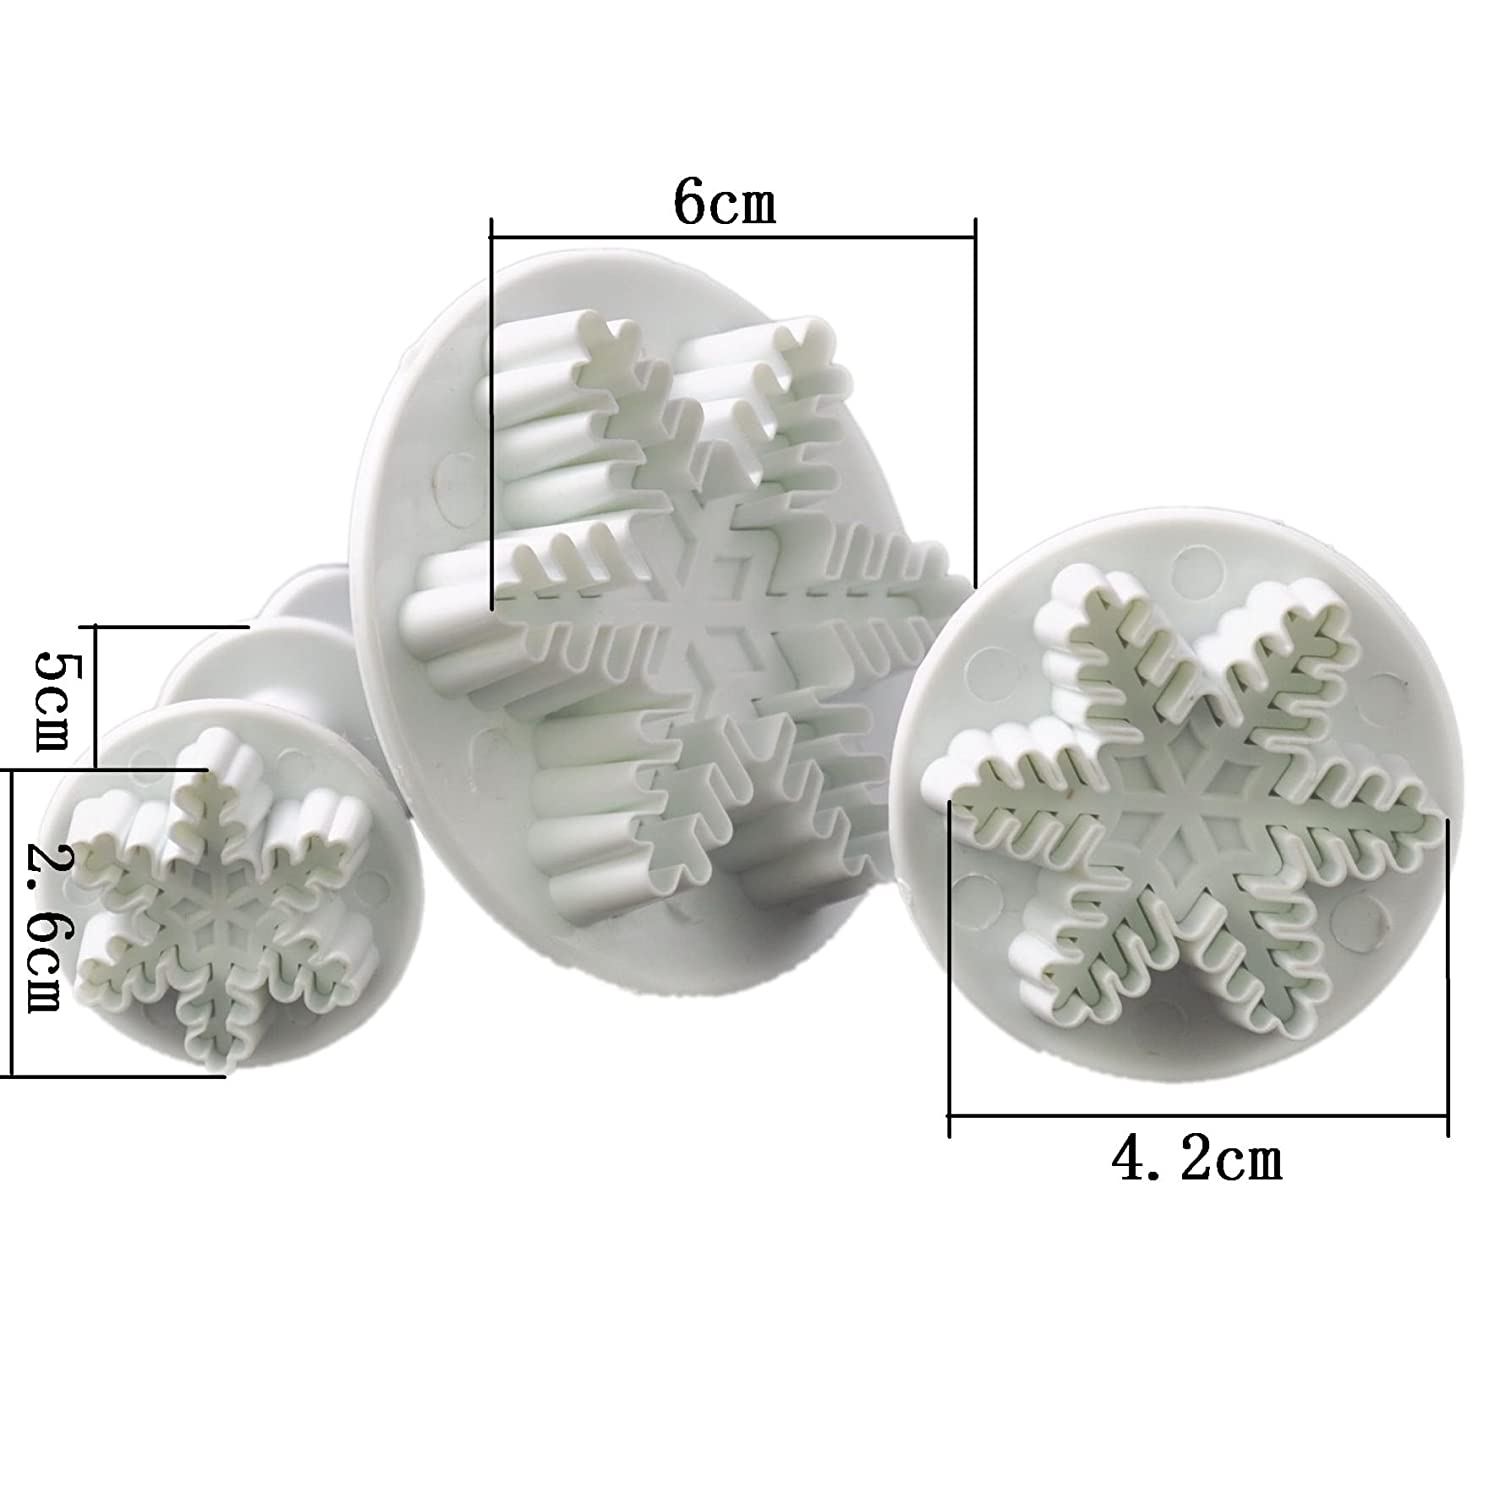 3 x Sugarcraft Snowflake Cutter Plunger Cake Decorating Tools Molds(Snowflake)